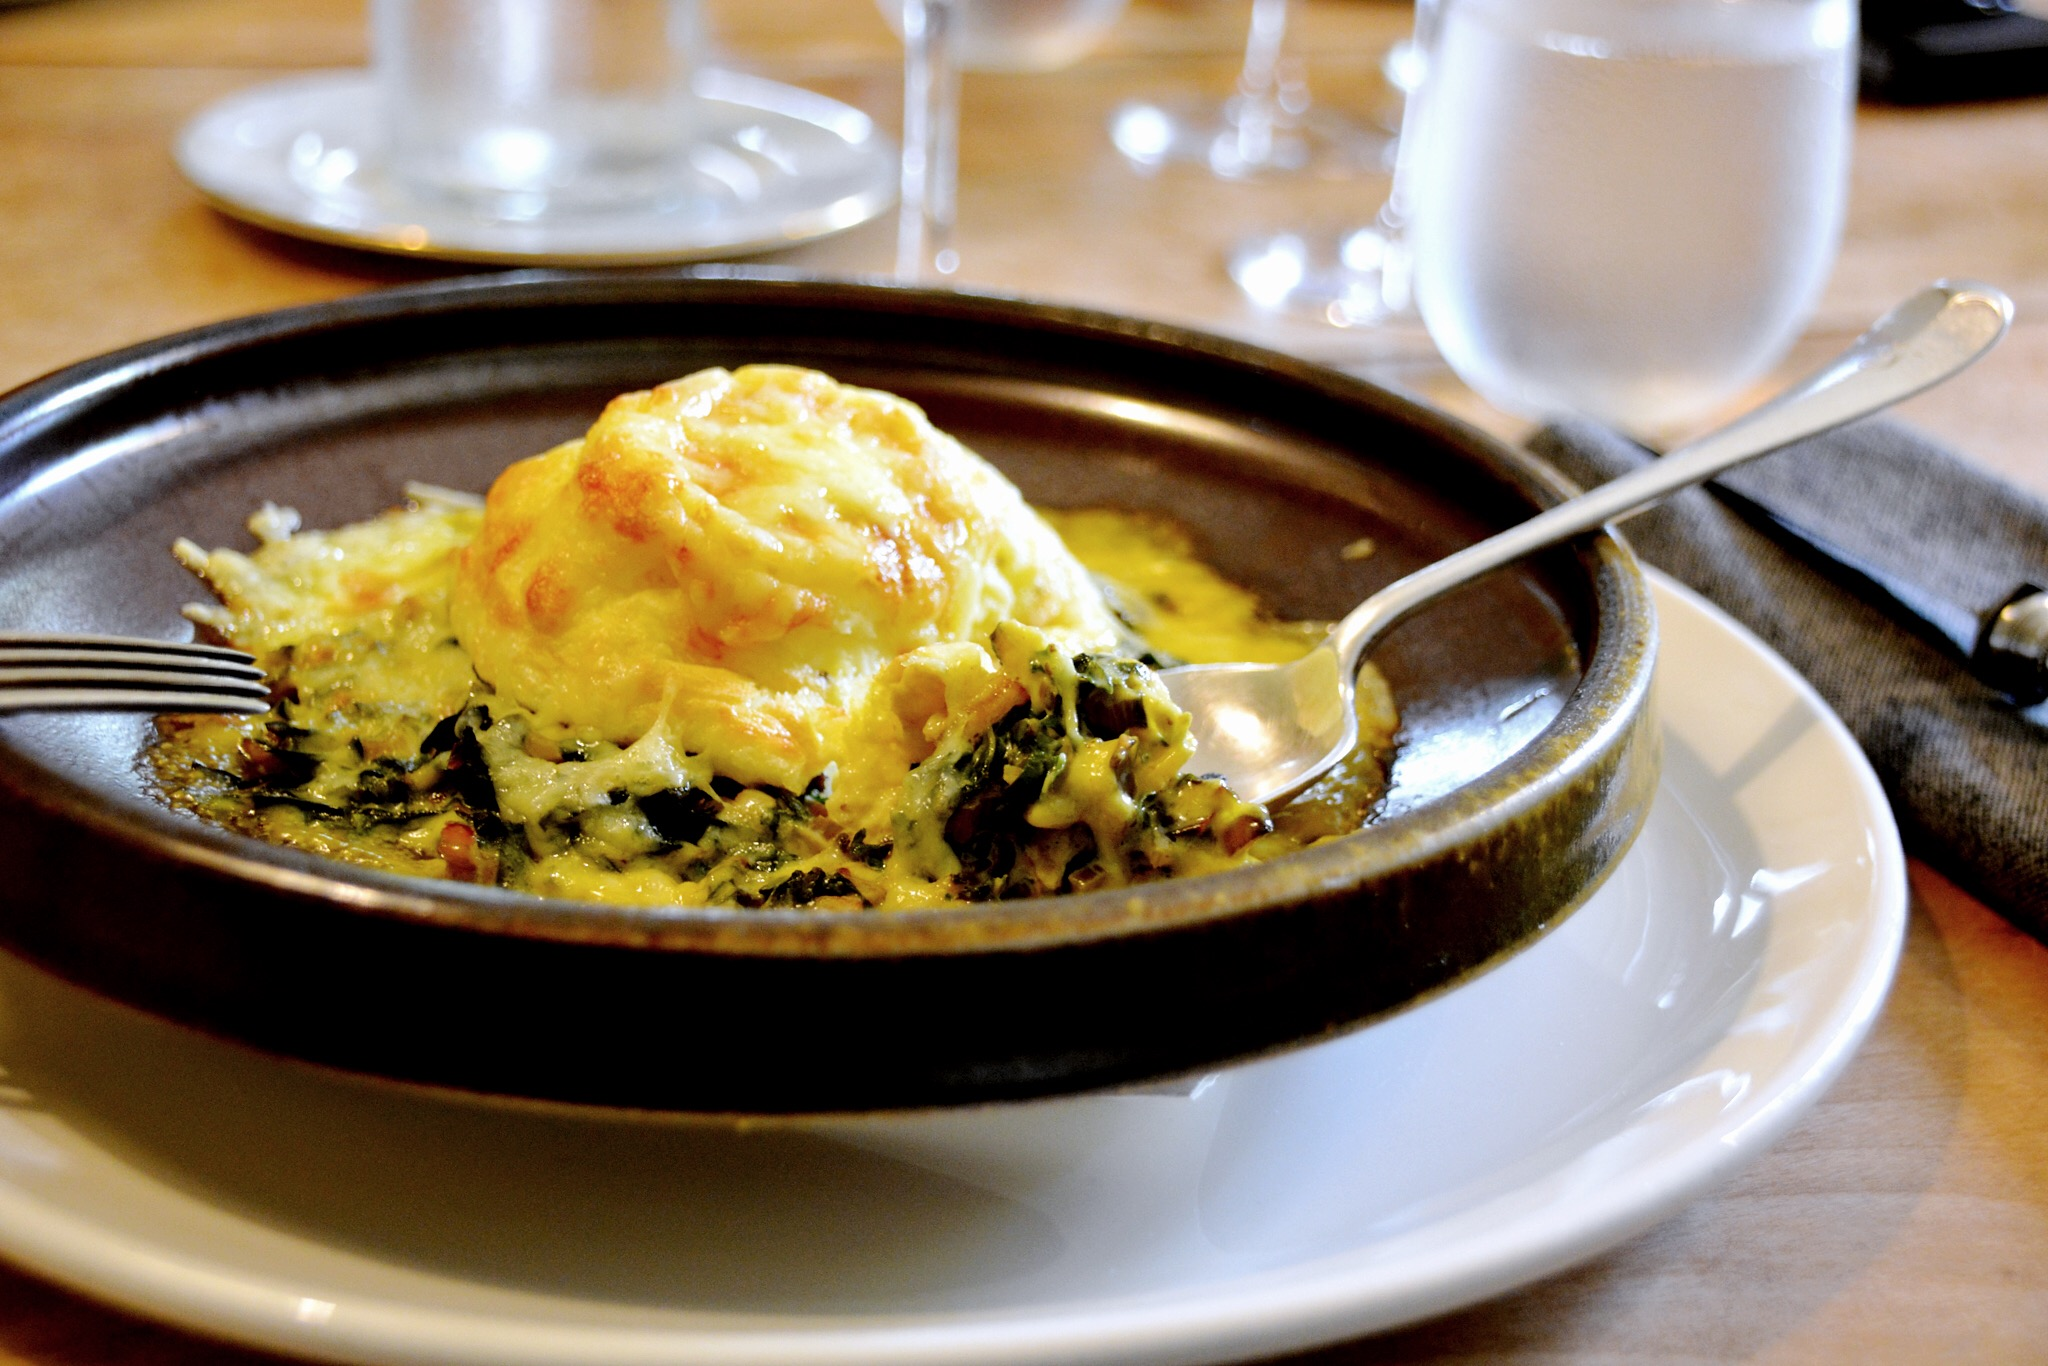 Soufflé di formaggio – twice baked cheese soufflé with chard